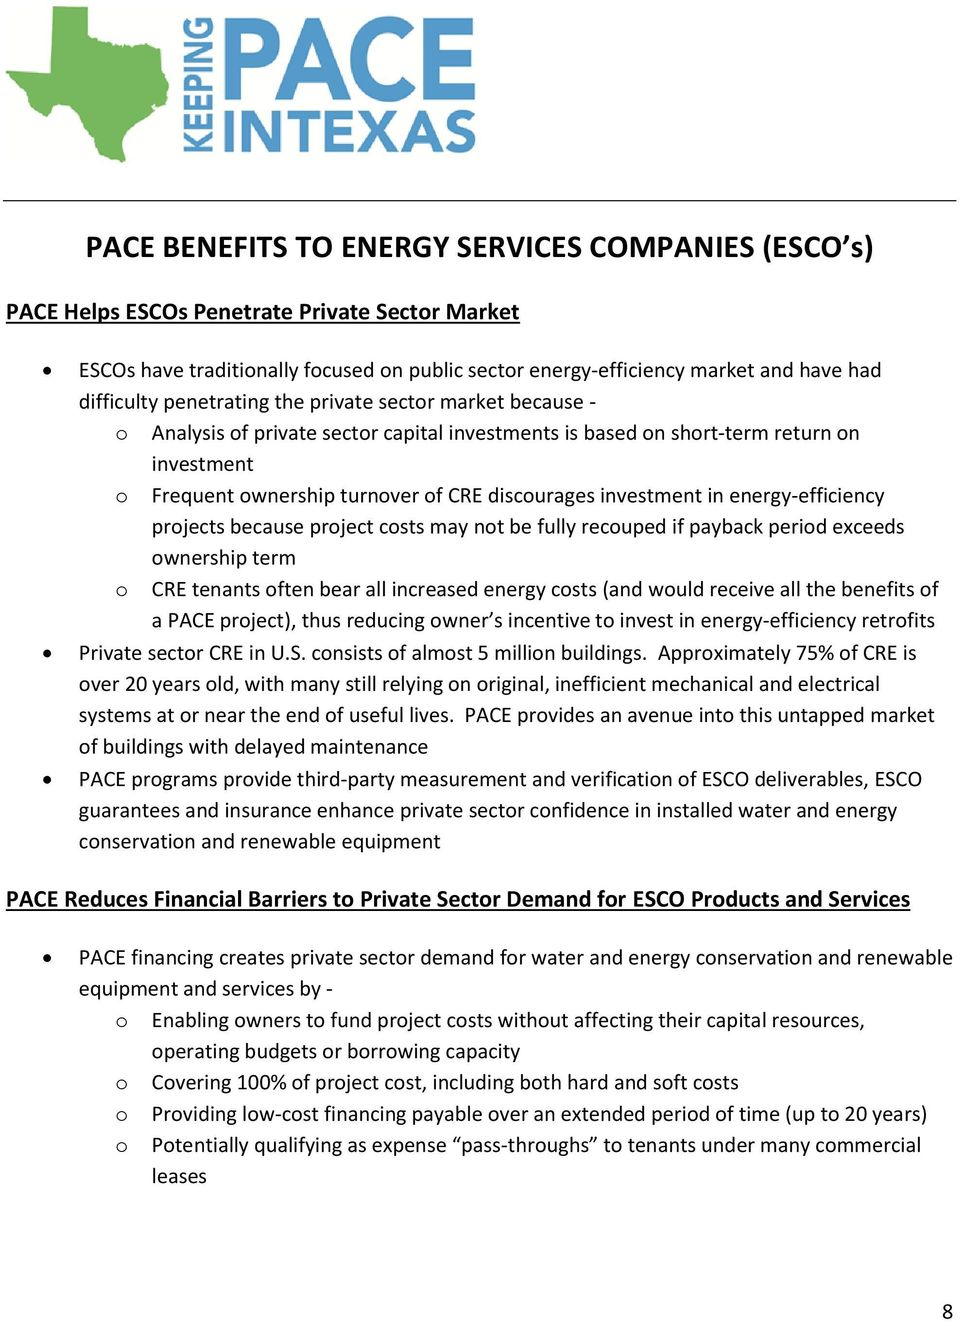 investment in energy-efficiency projects because project costs may not be fully recouped if payback period exceeds ownership term o CRE tenants often bear all increased energy costs (and would